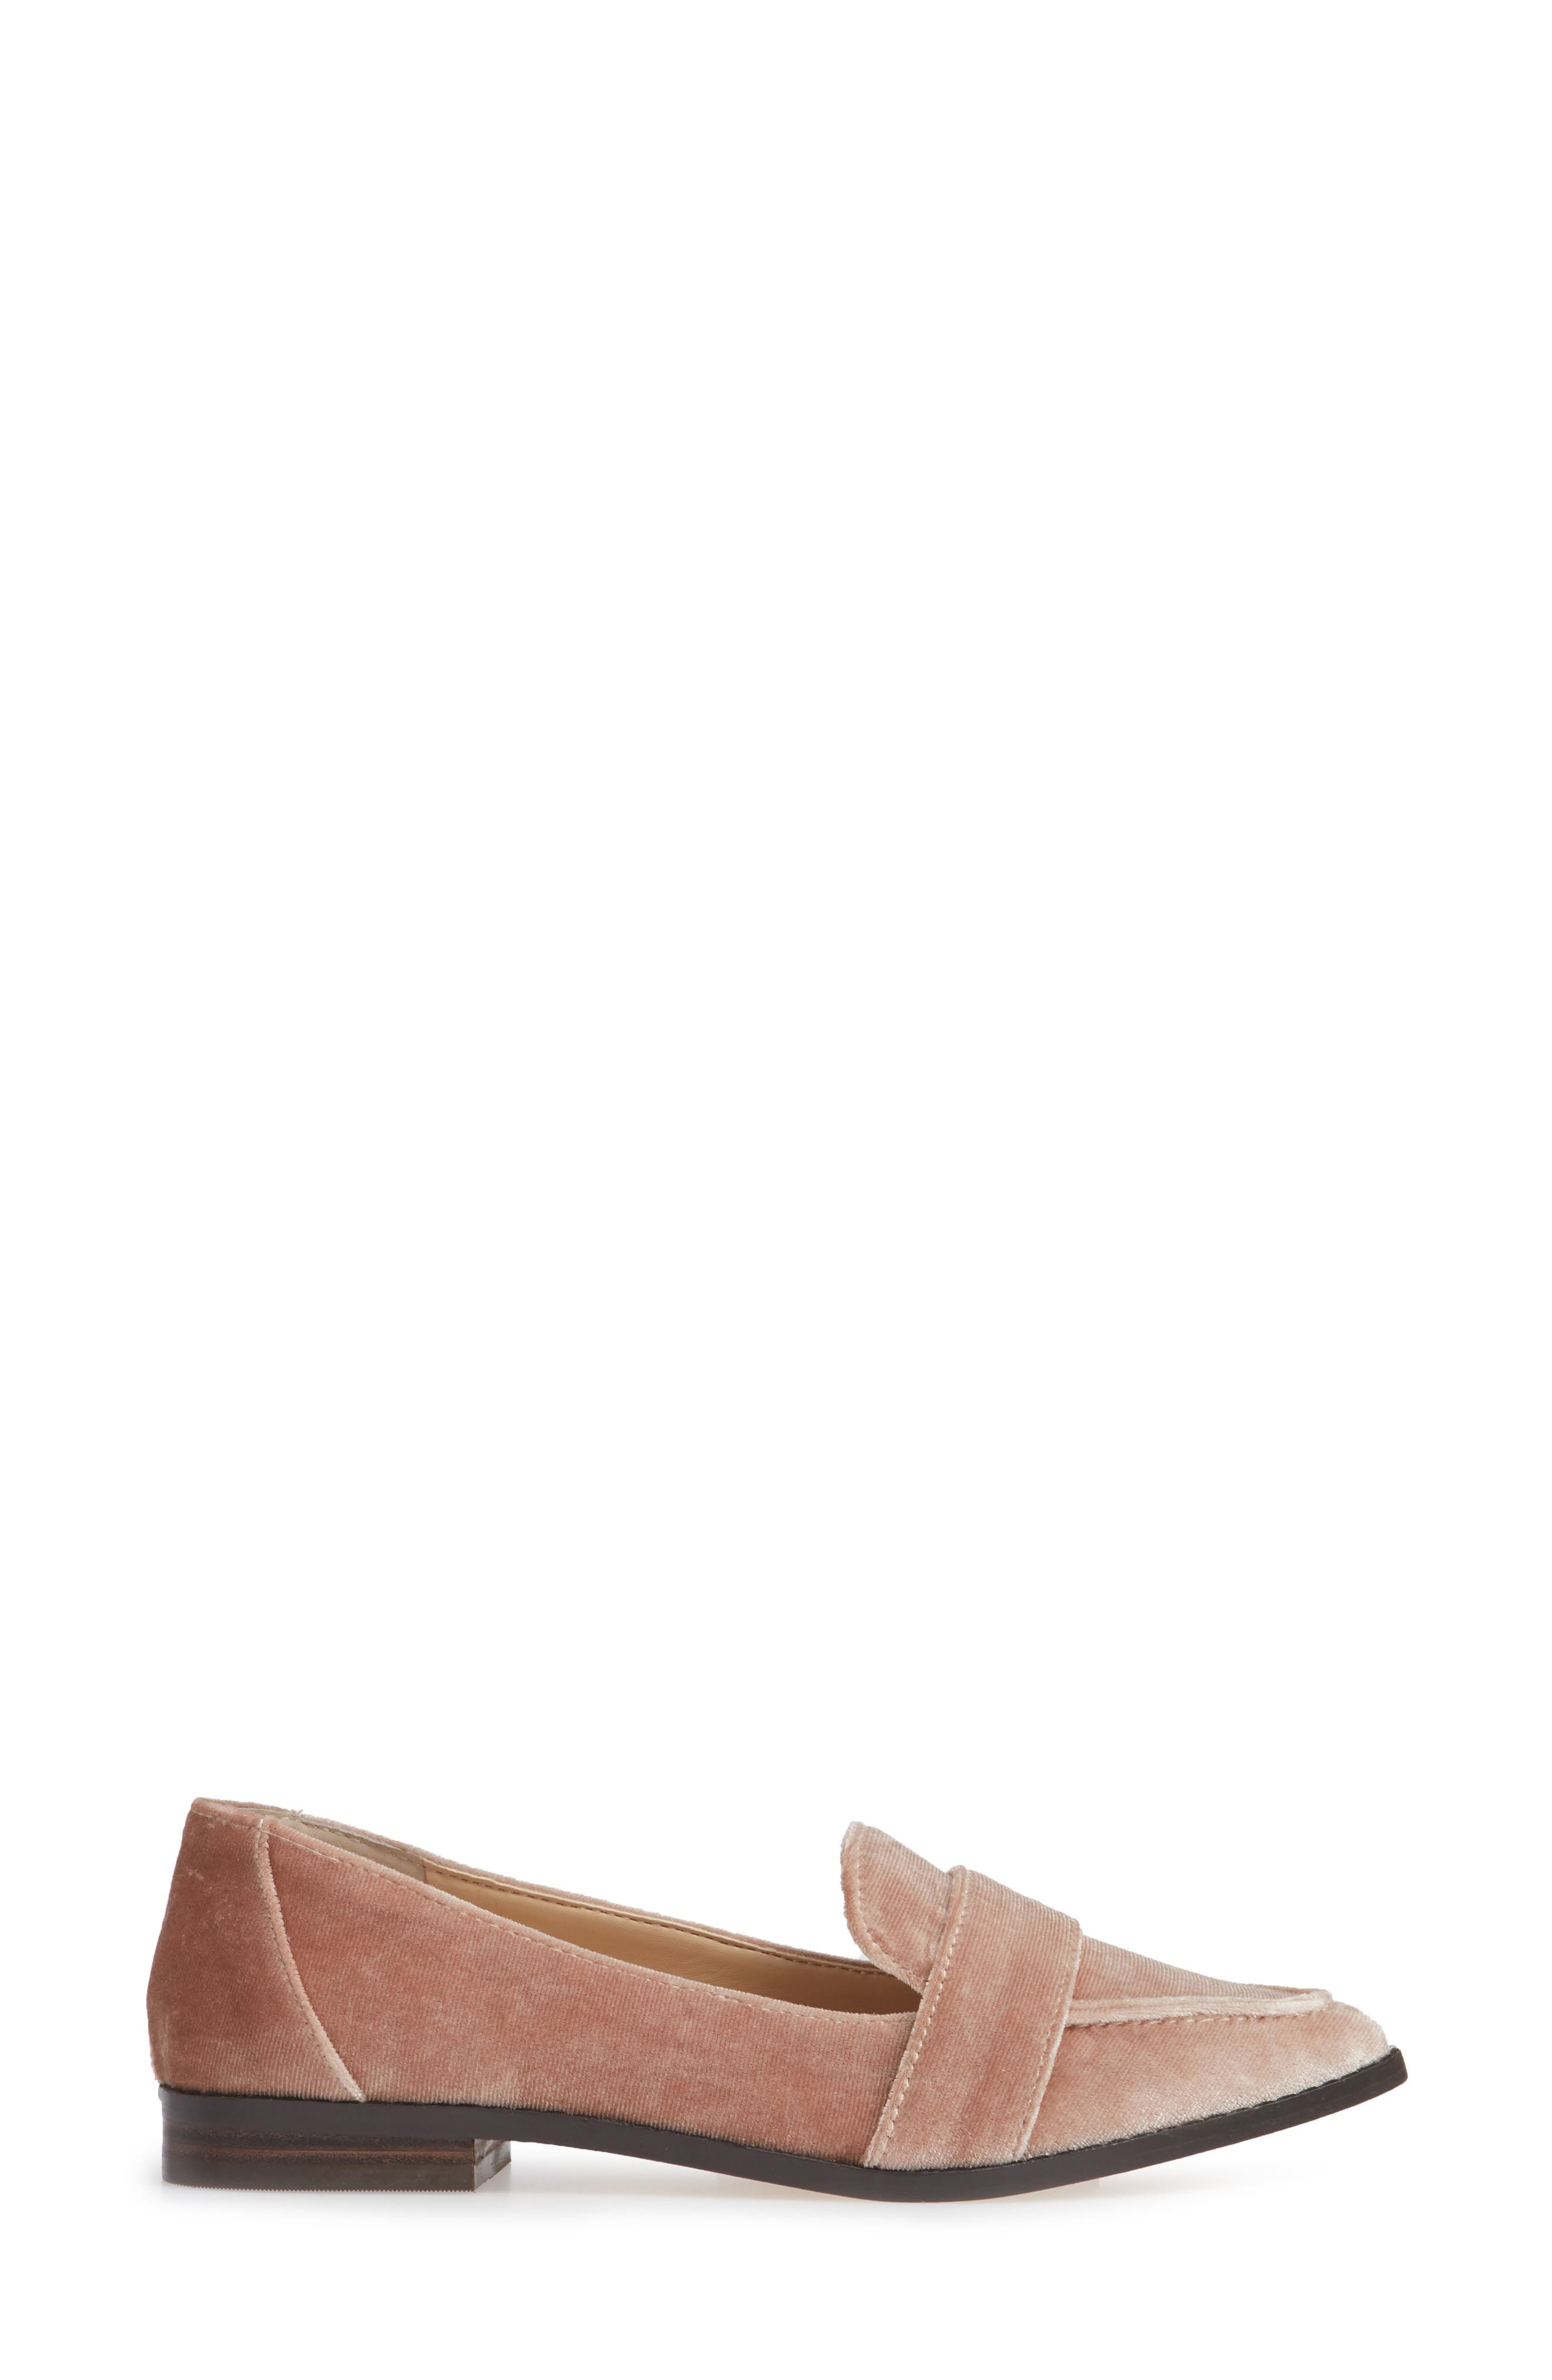 Edie Pointy Toe Loafer,                             Alternate thumbnail 4, color,                             Moonlight Velvet